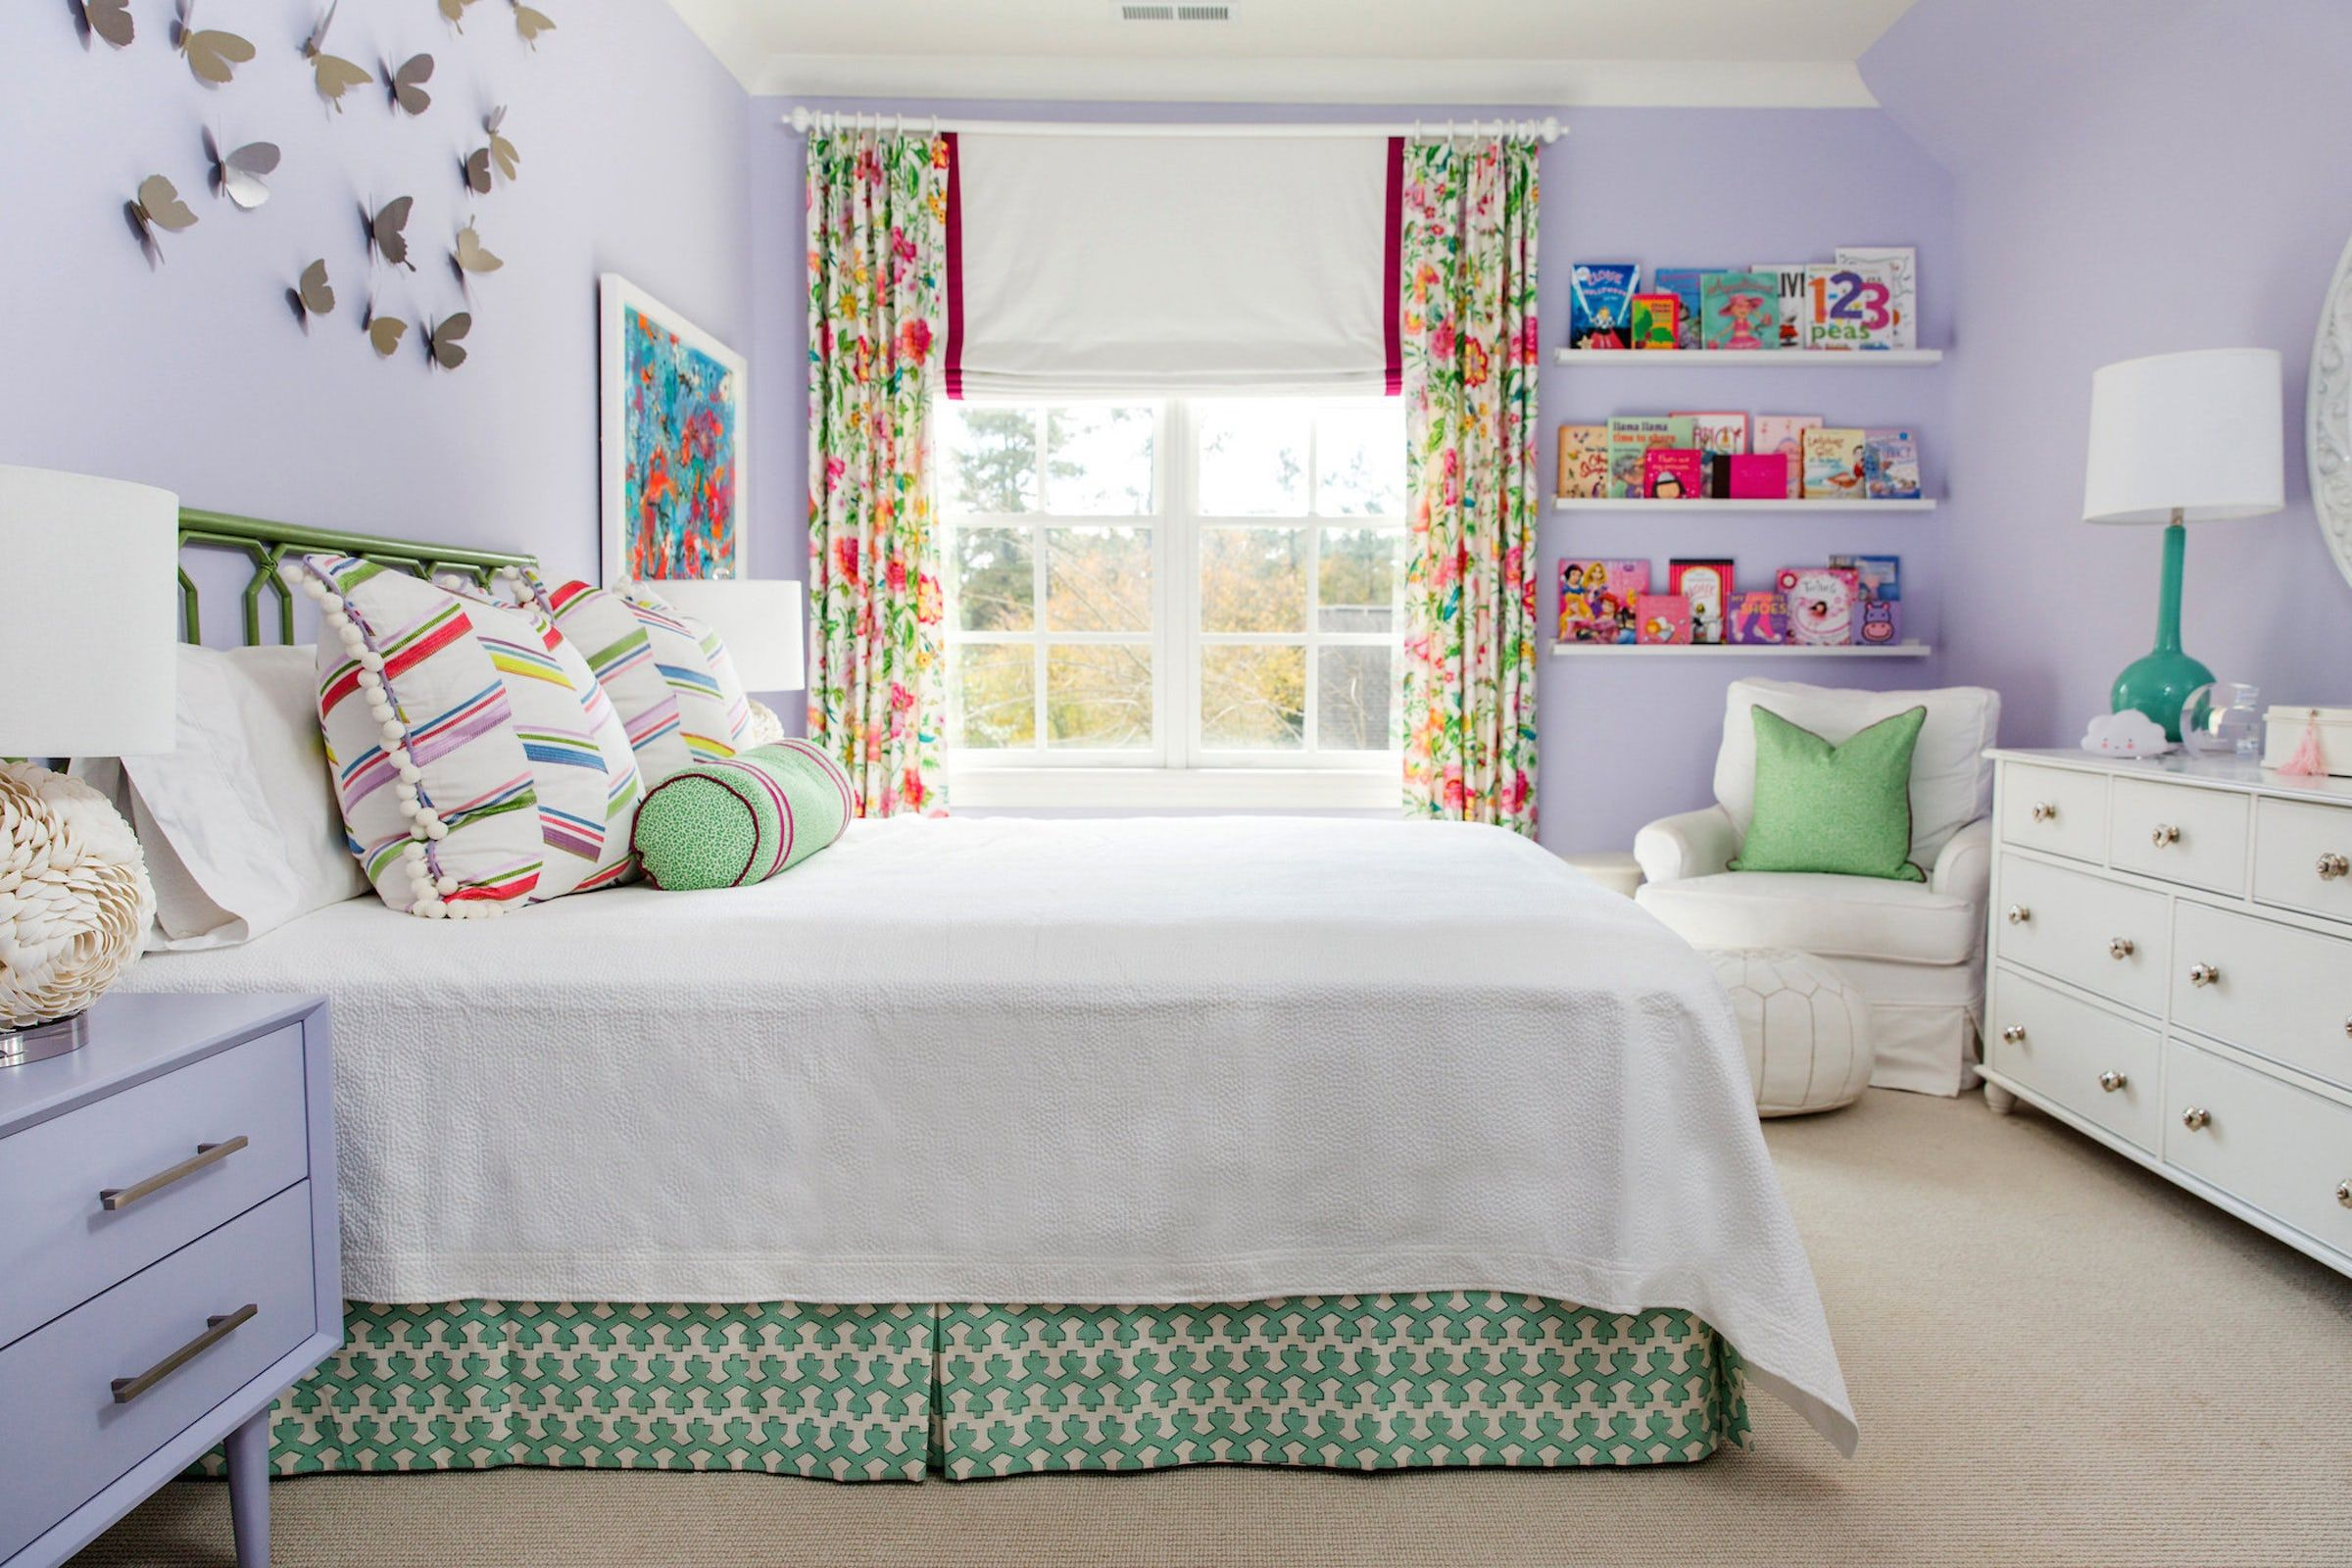 20 Creative Girls Room Ideas - How to Decorate a Girl\'s Bedroom